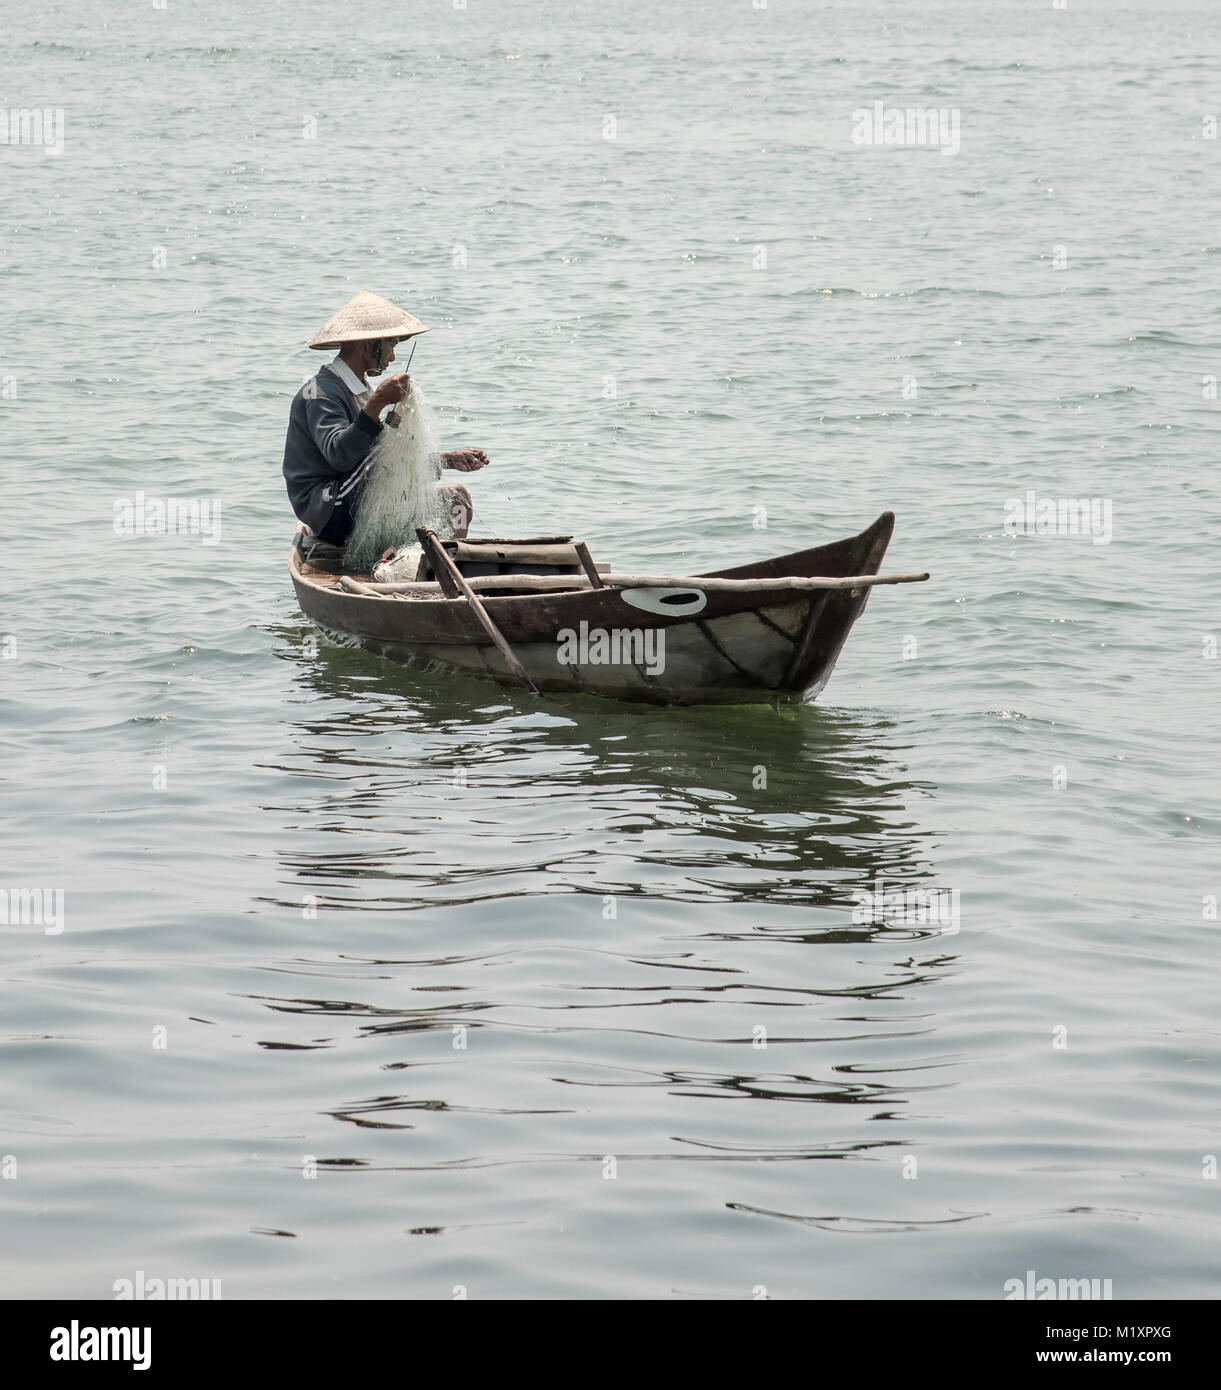 Vietnamese man fishing from small traditional fishing boat on the river Bon , Hoi An. - Stock Image